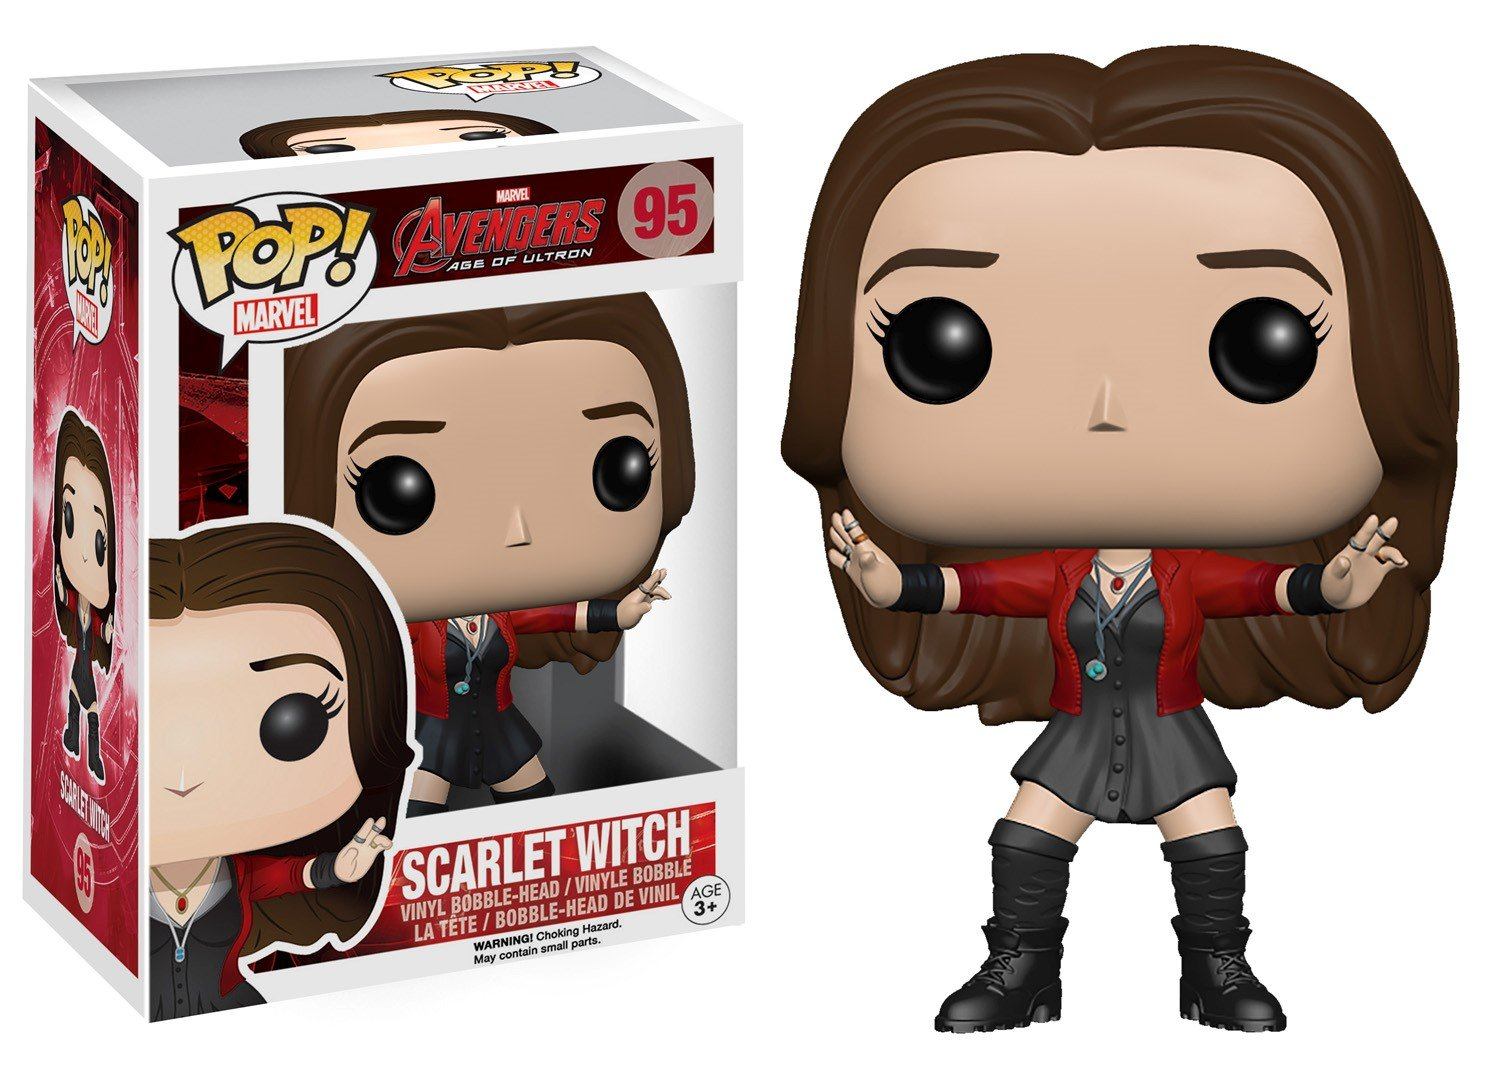 515788870a5 Amazon.com  Funko POP Marvel  Avengers 2 - Scarlet Witch Vinyl Figure  Funko  Pop! Marvel   Toys   Games